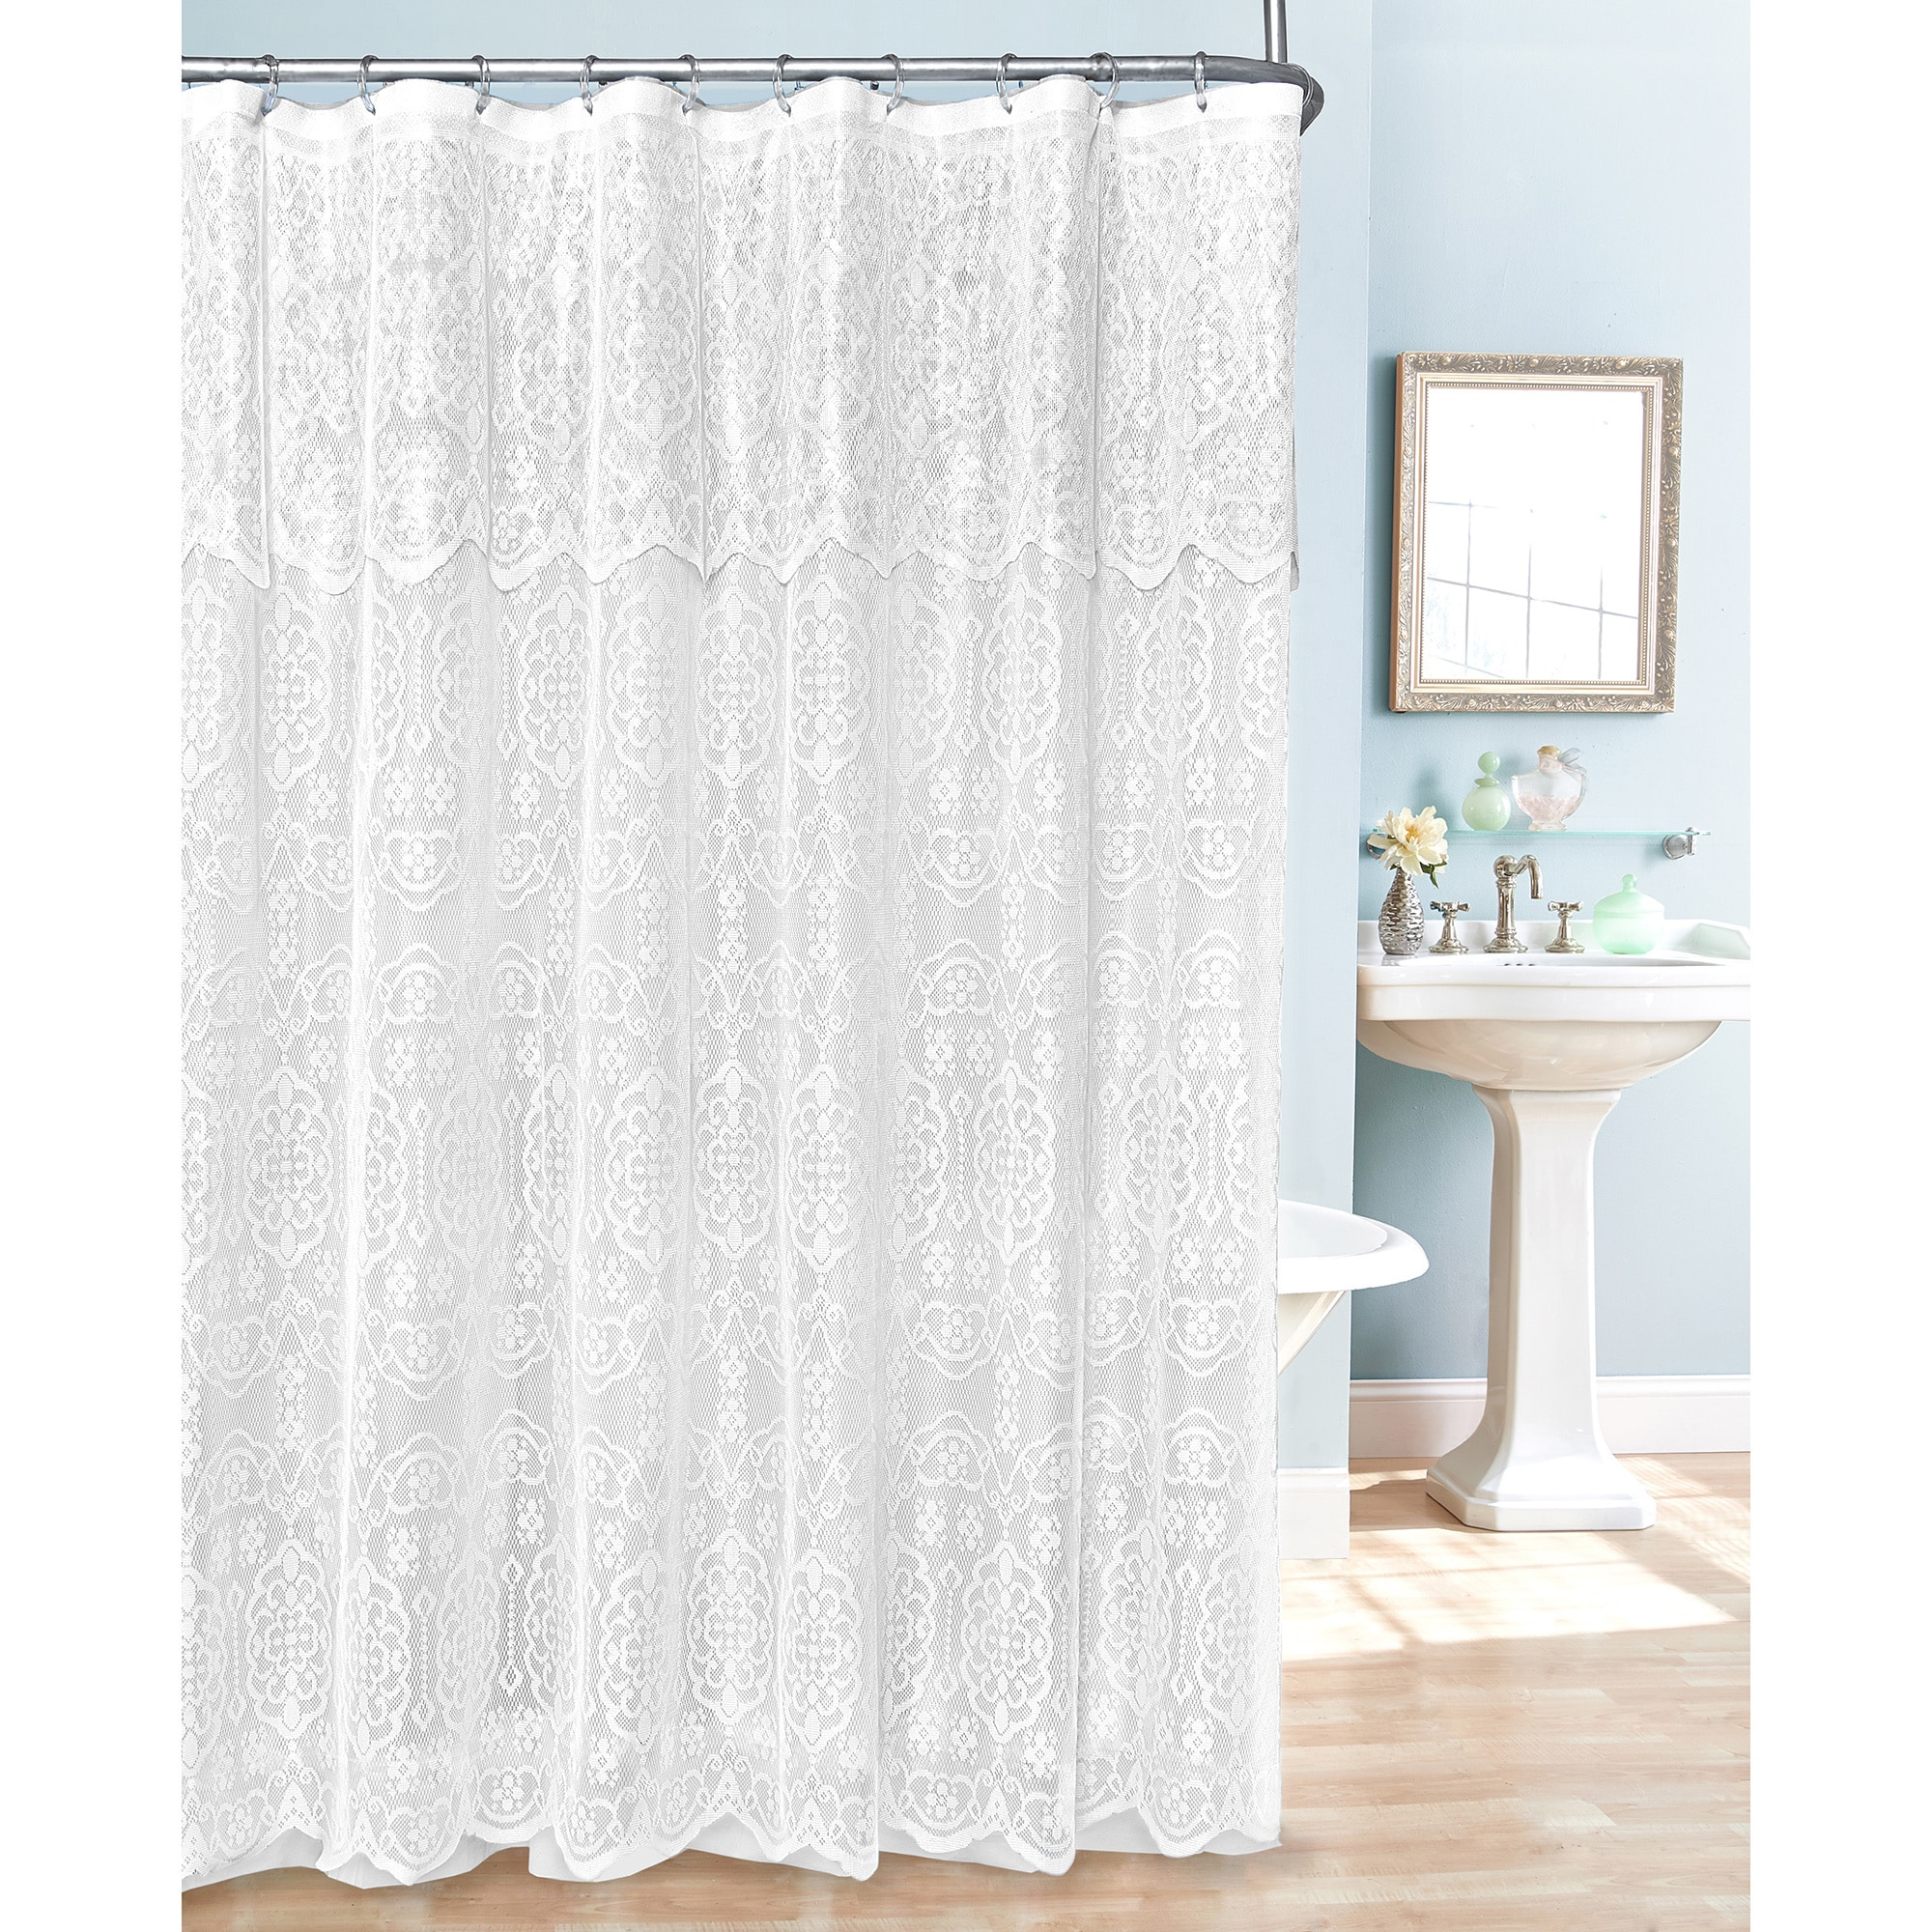 Lace Shower Curtain - Free Shipping On Orders Over $45 - Overstock.com -  17461037